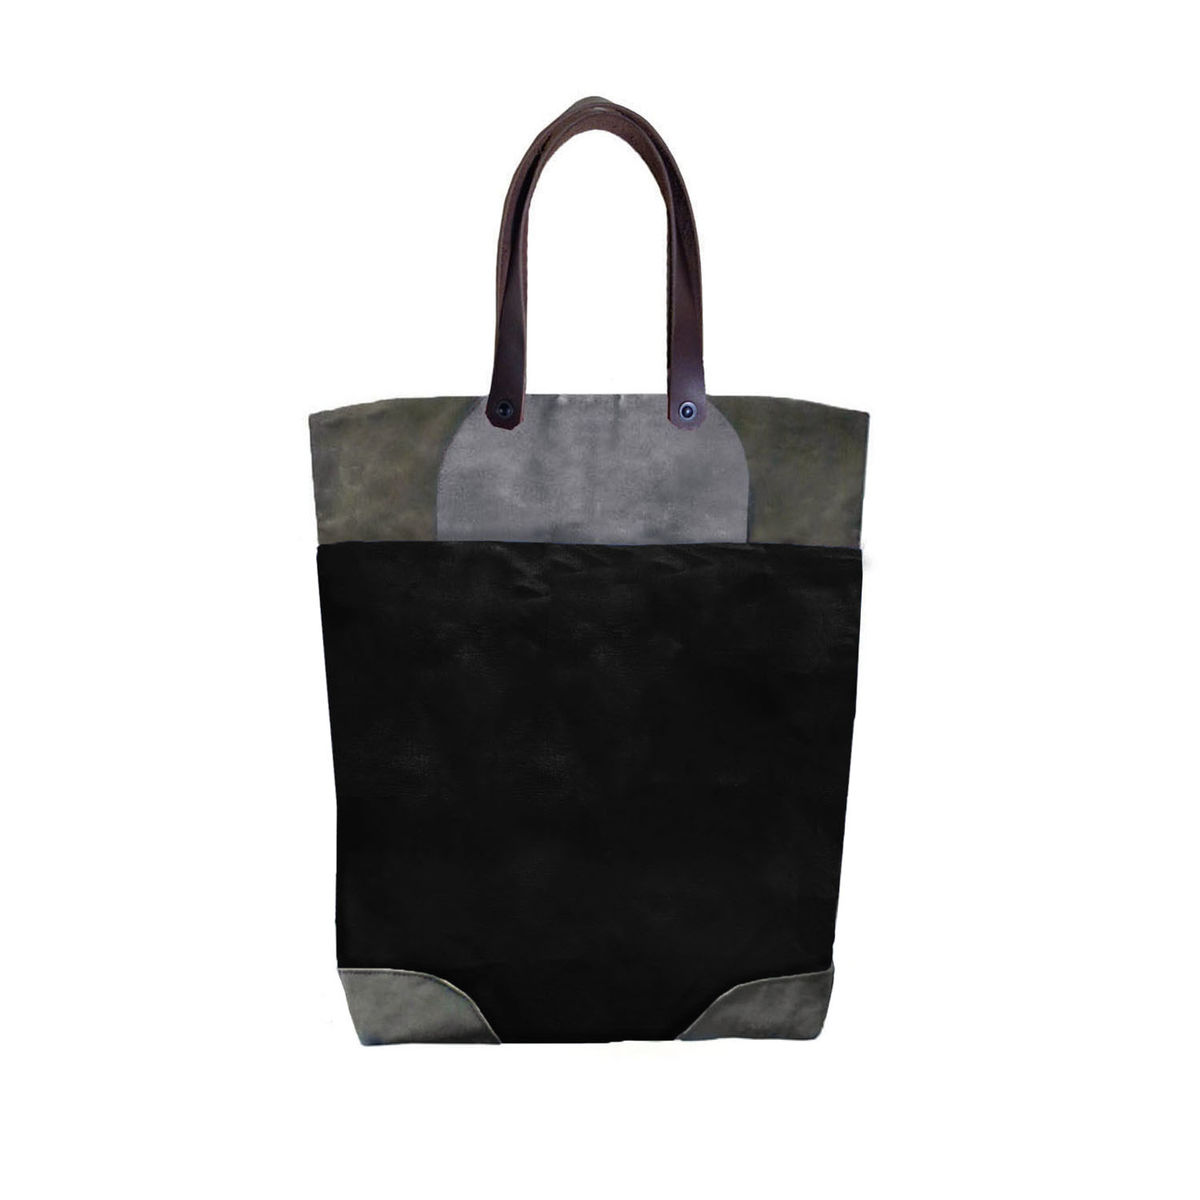 Pop Tote in Waxed Canvas, Leather Straps - Infantry - product images  of